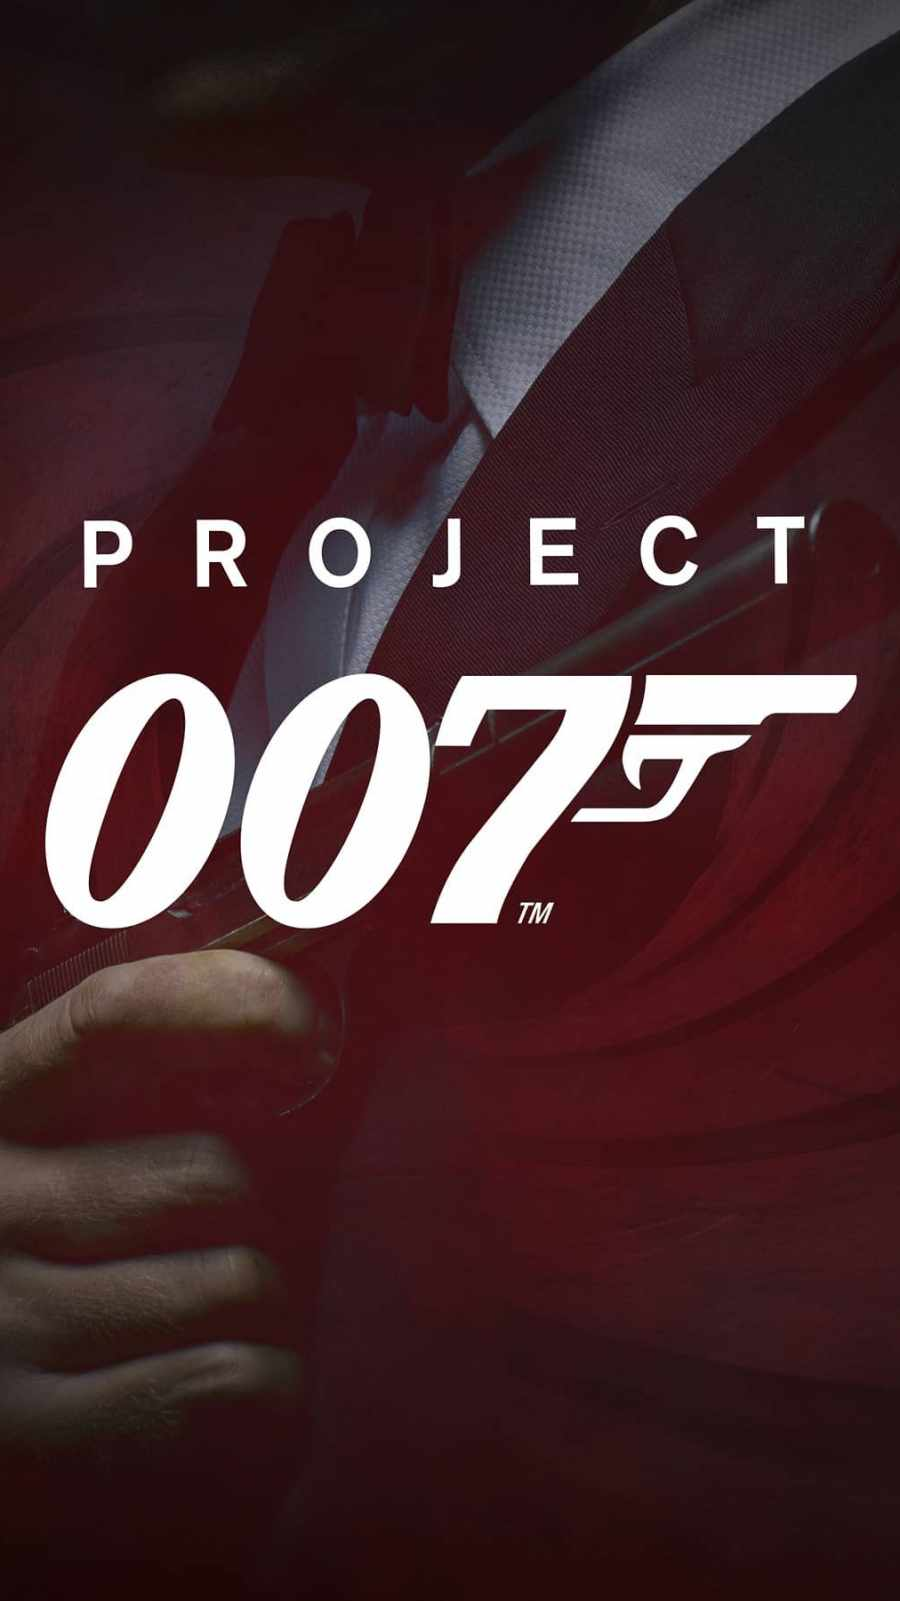 Project 007 iPhone Wallpaper